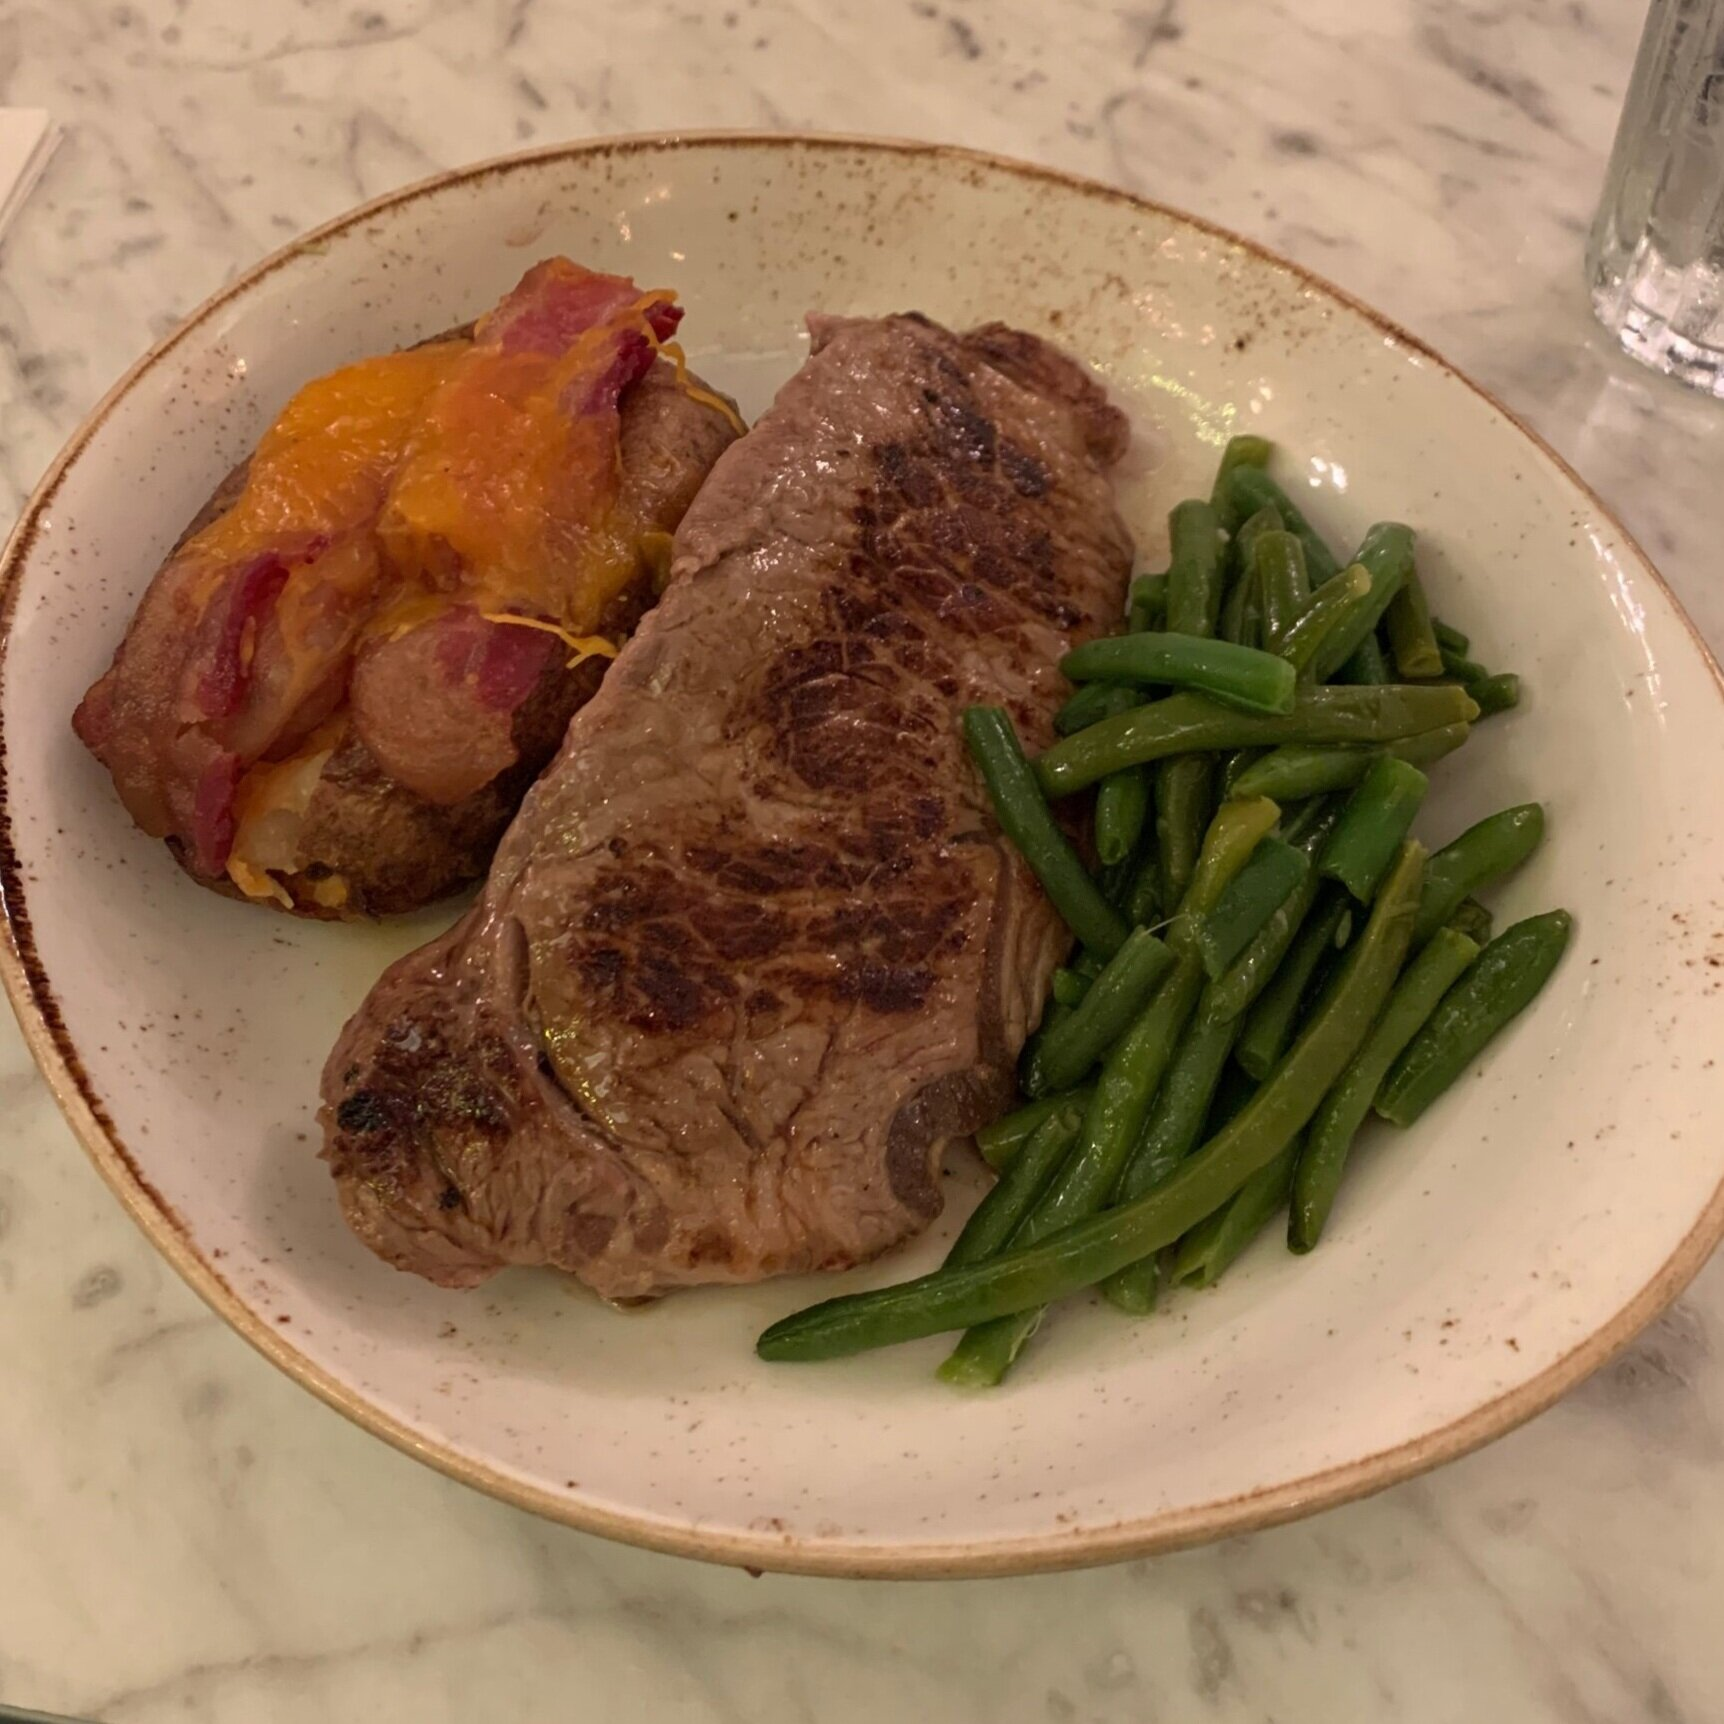 Strip Steak with Green Beans and Twice-Baked Potato at The Plaza Restaurant